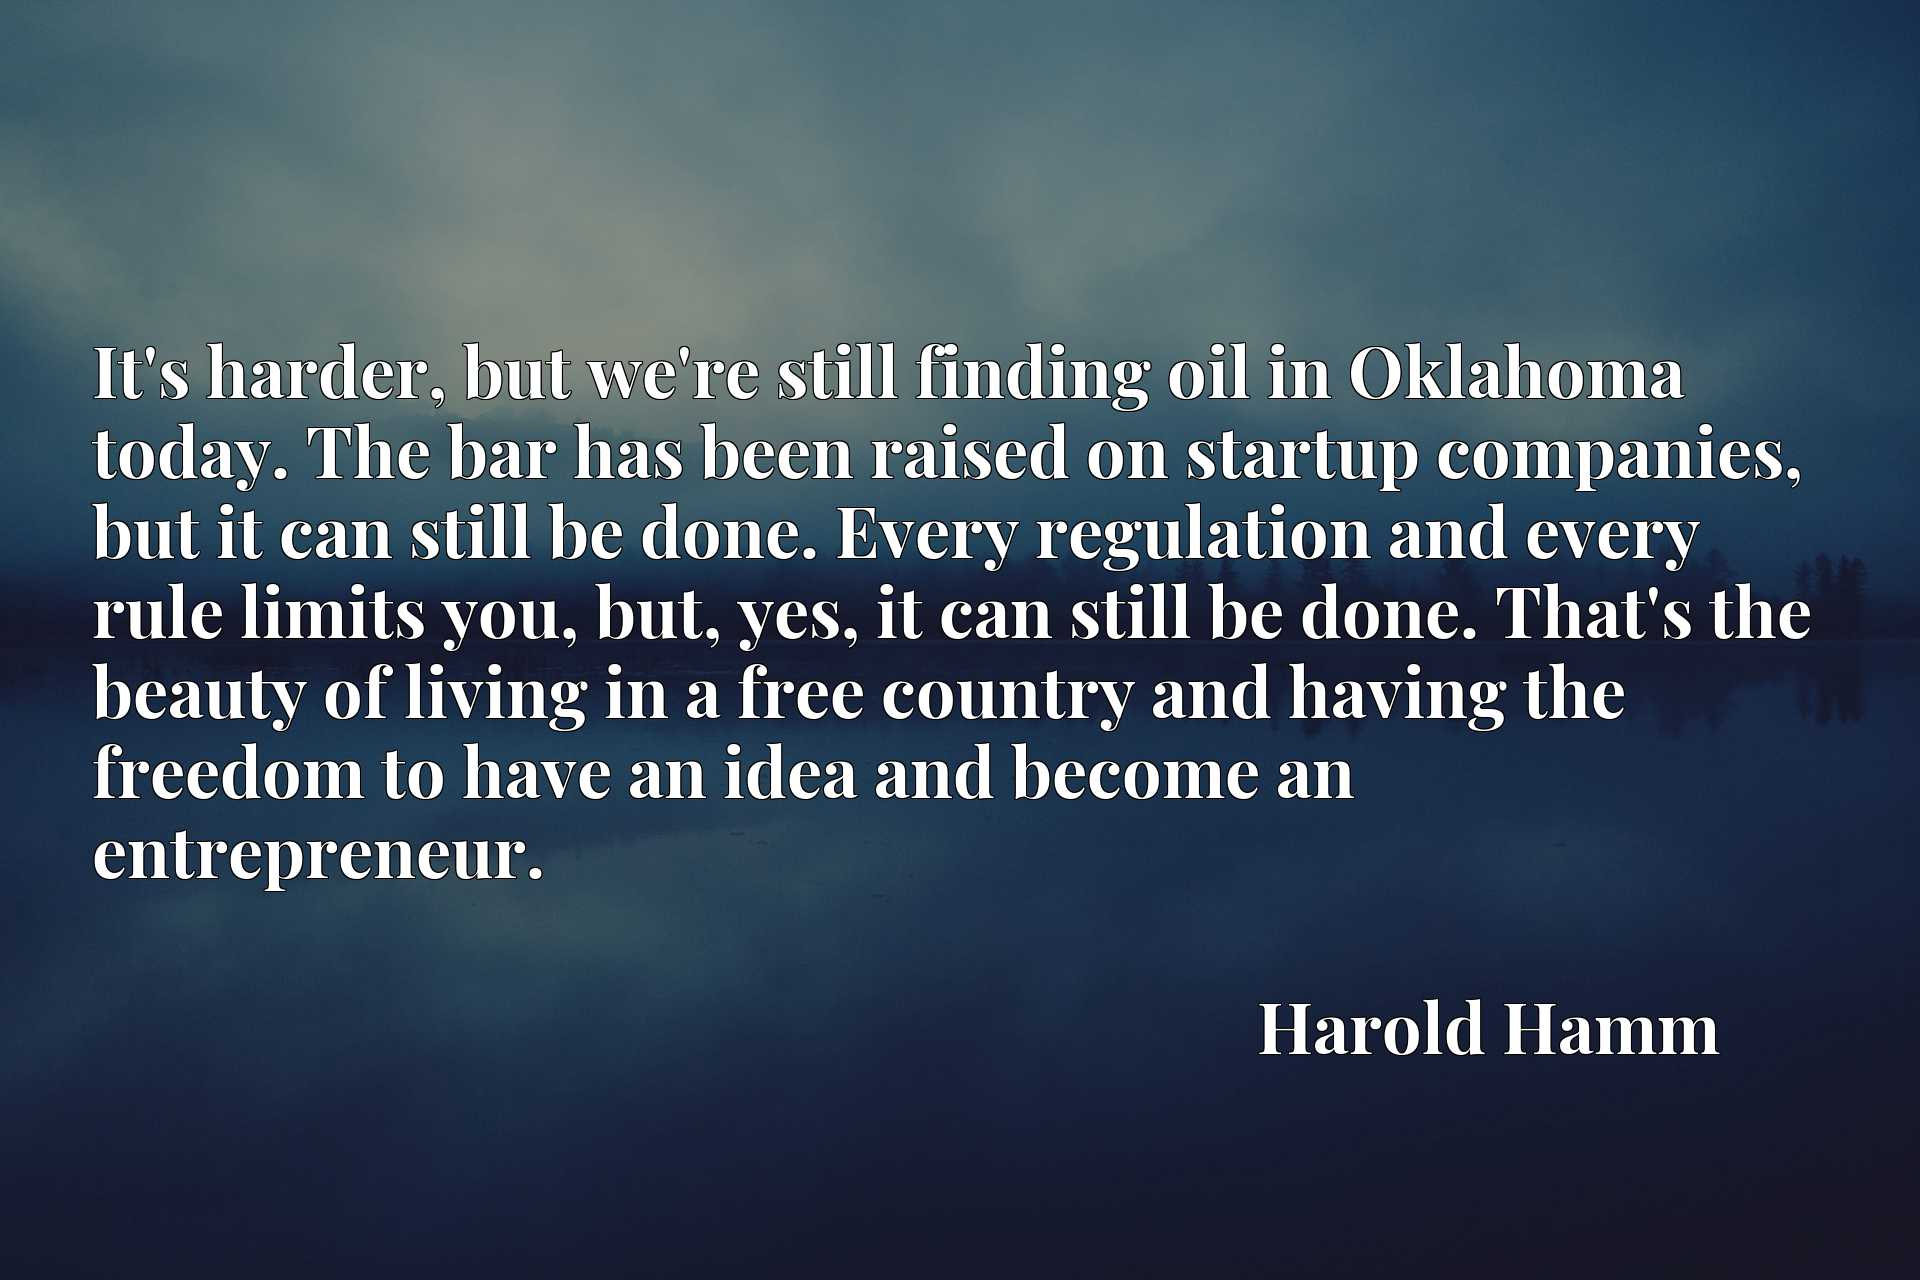 It's harder, but we're still finding oil in Oklahoma today. The bar has been raised on startup companies, but it can still be done. Every regulation and every rule limits you, but, yes, it can still be done. That's the beauty of living in a free country and having the freedom to have an idea and become an entrepreneur.